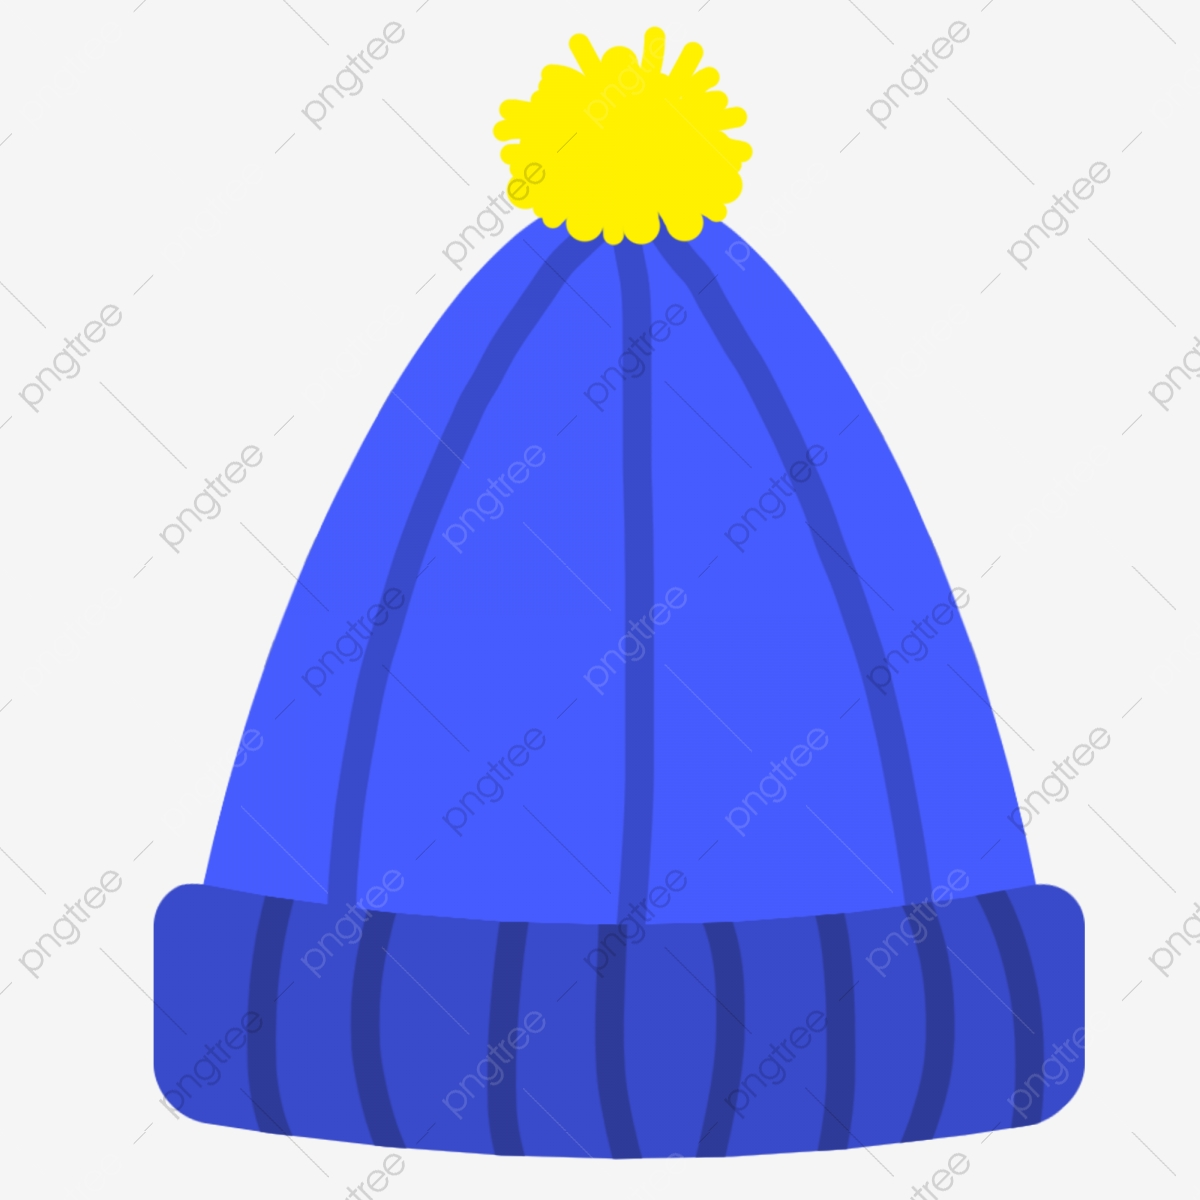 Winter Hat Sketchpad Illustration Blue Hat Cartoon Illustration Decorative Illustration Png Transparent Clipart Image And Psd File For Free Download